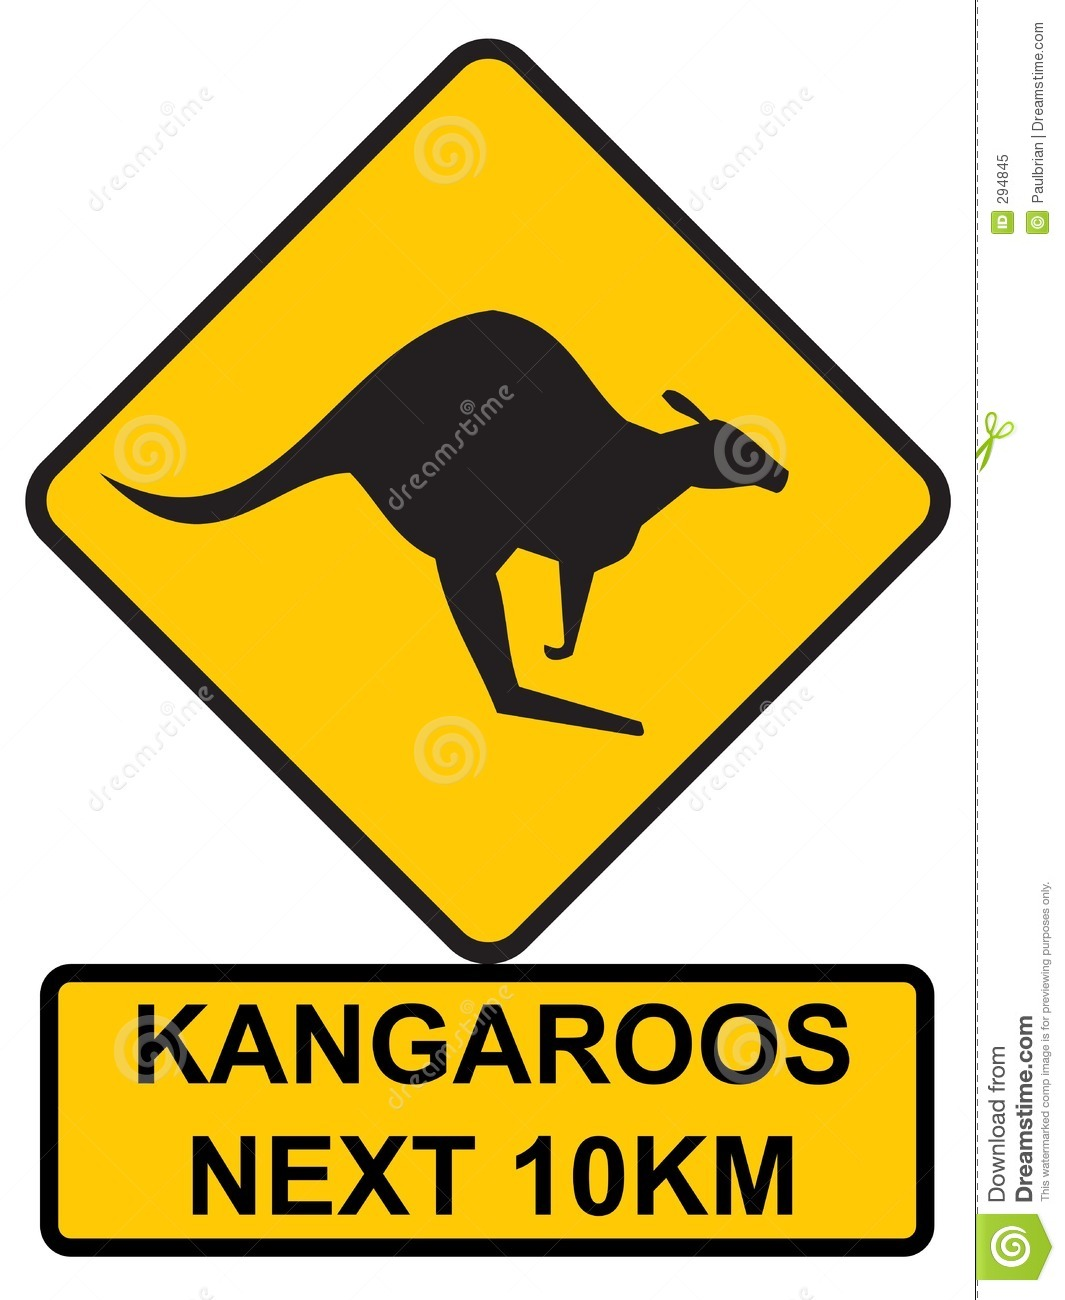 Kangaroos Ahead Royalty Free Stock Photo - Image: 294845